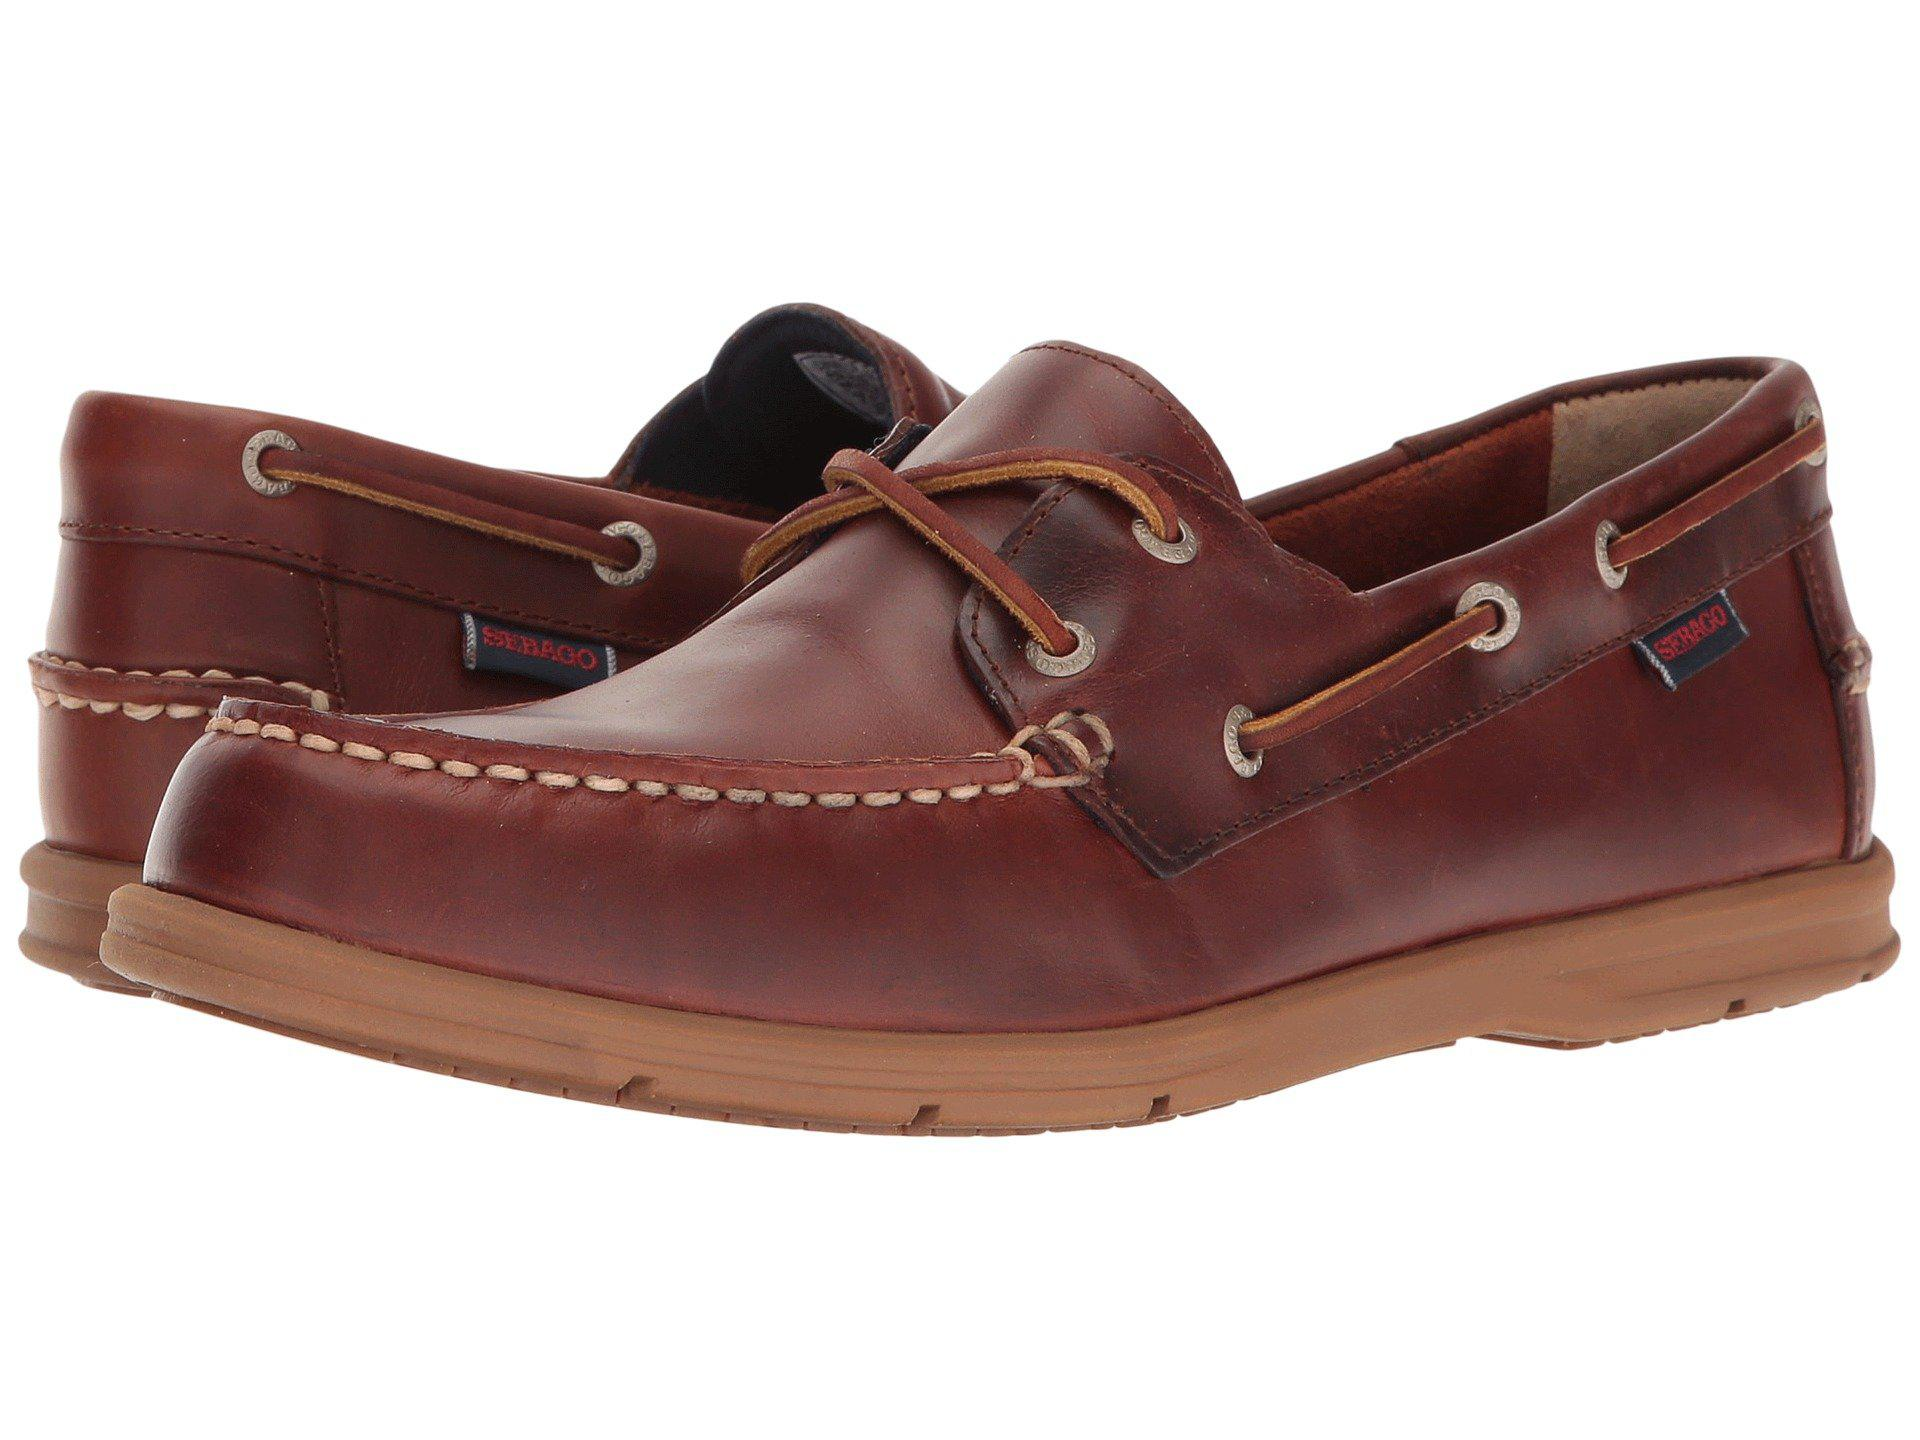 Sebago. Men's Brown Litesides Two Eye